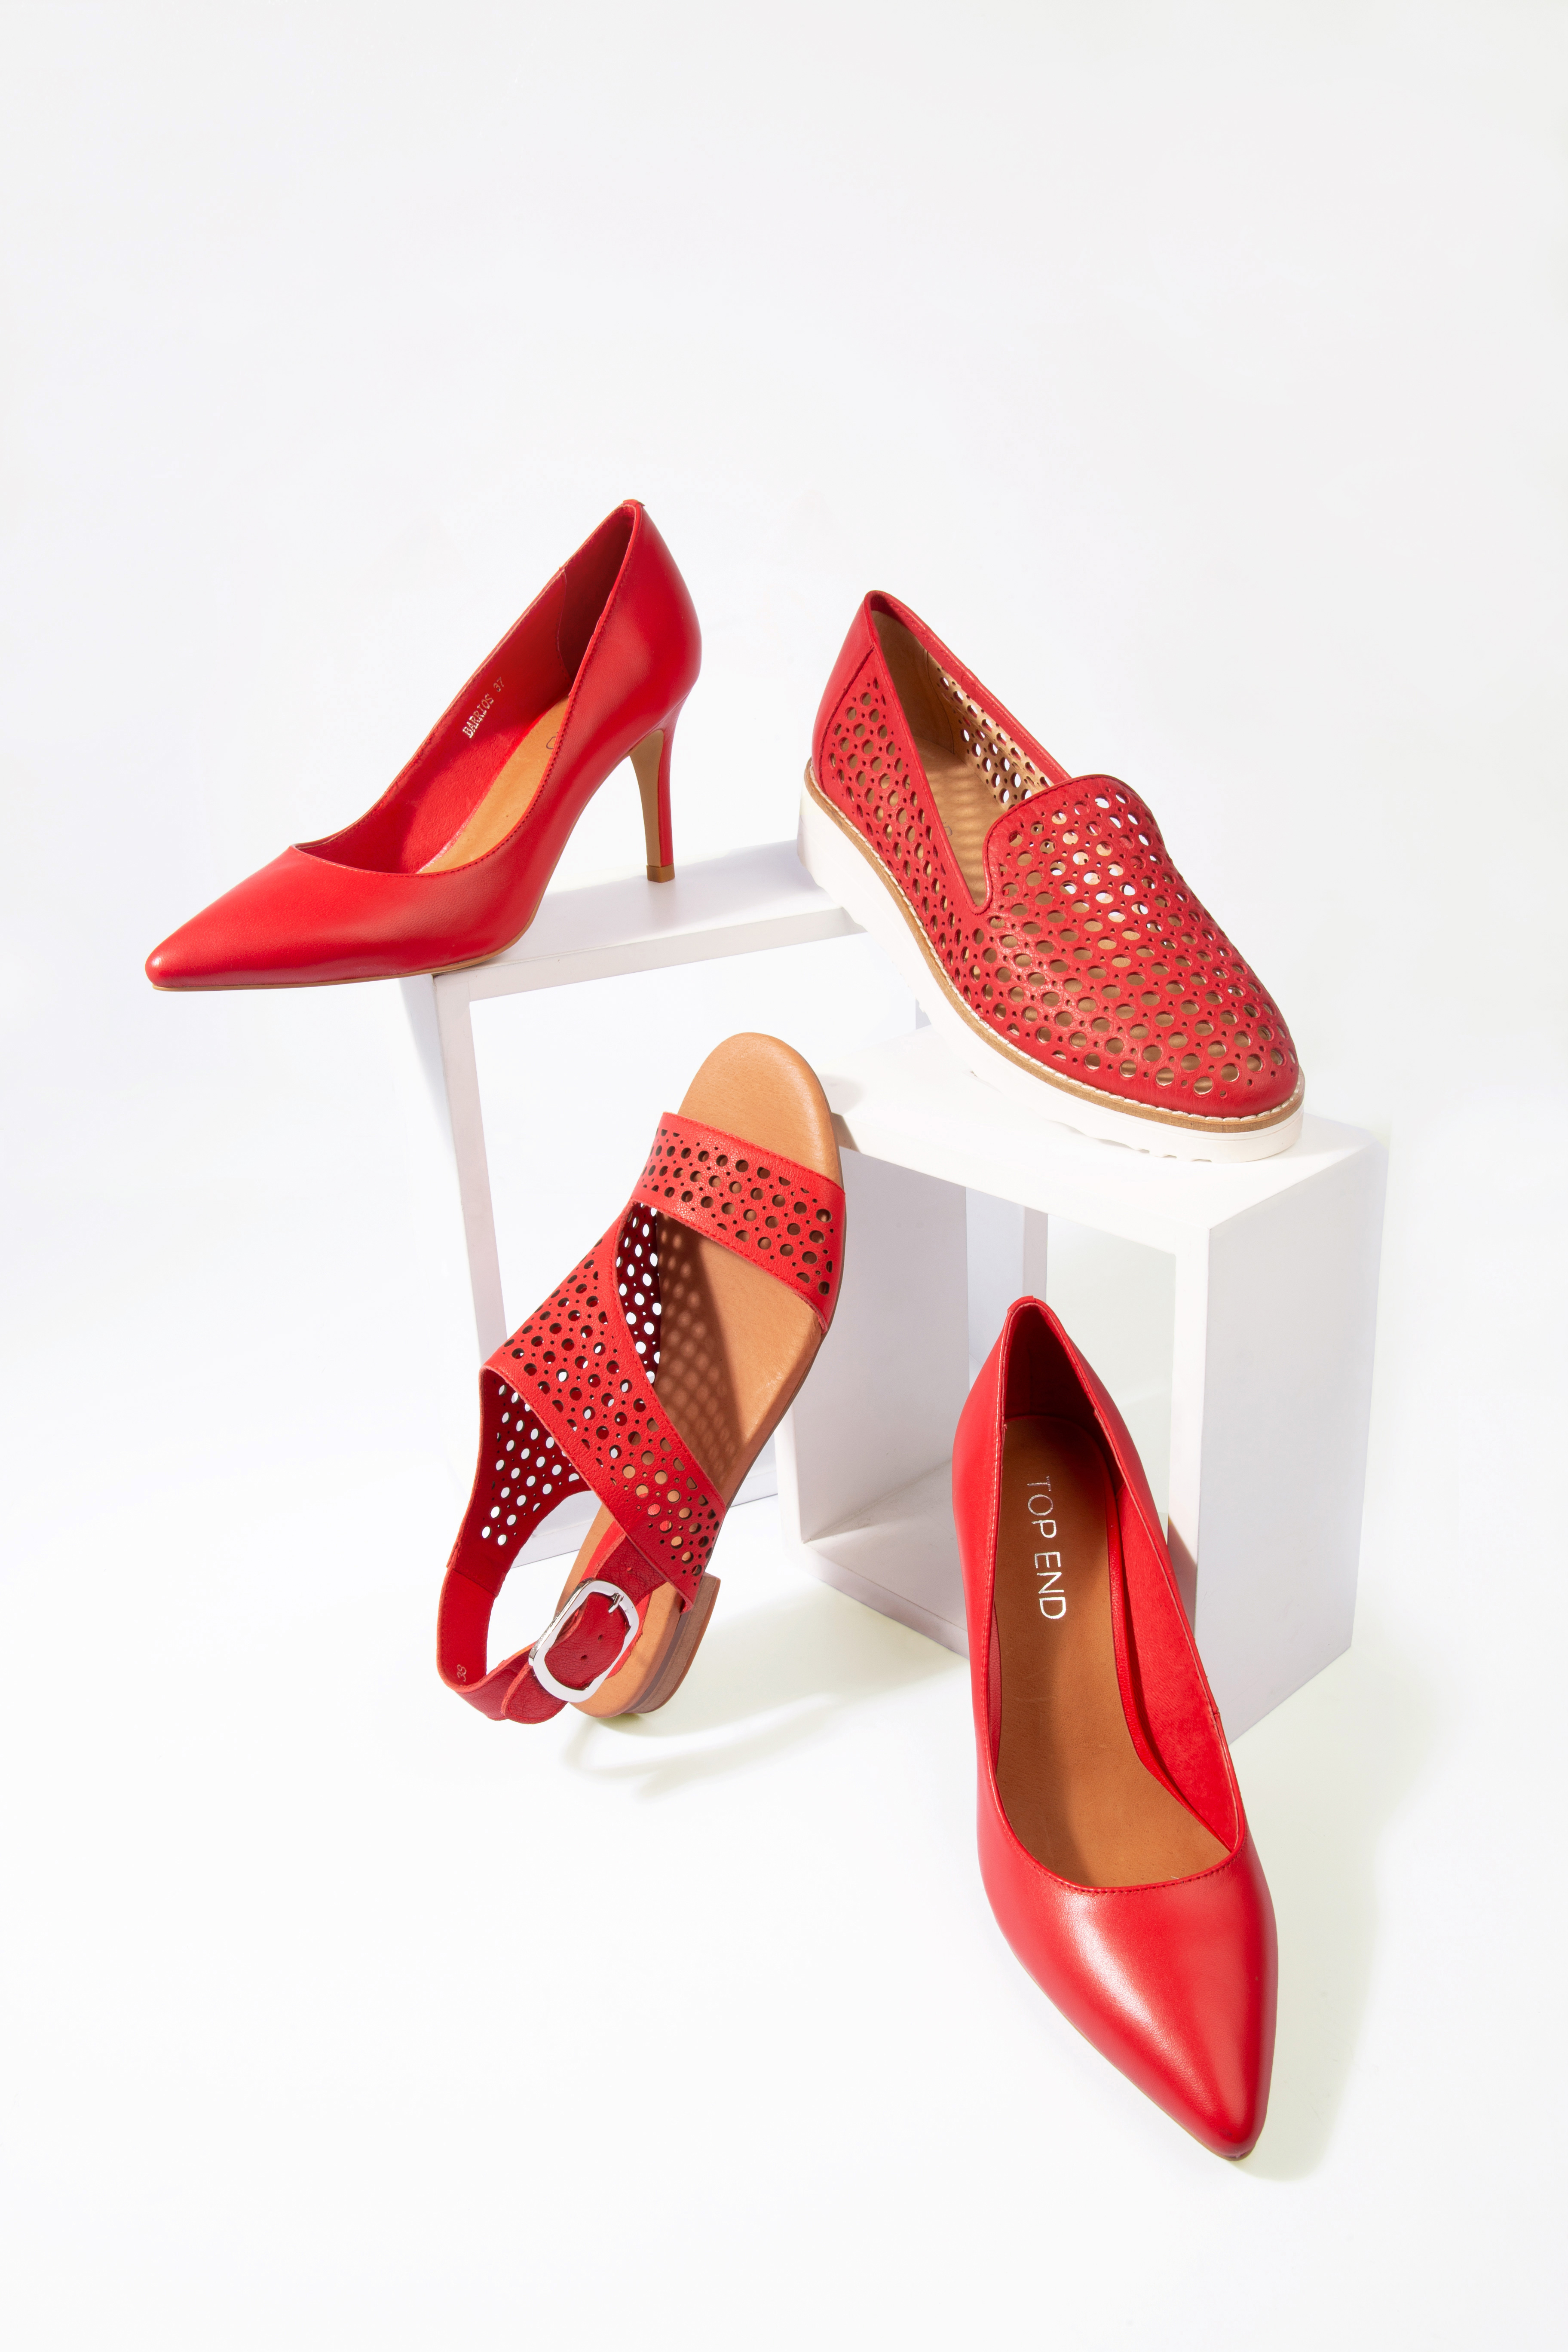 Top End Shoes specialises in Heels